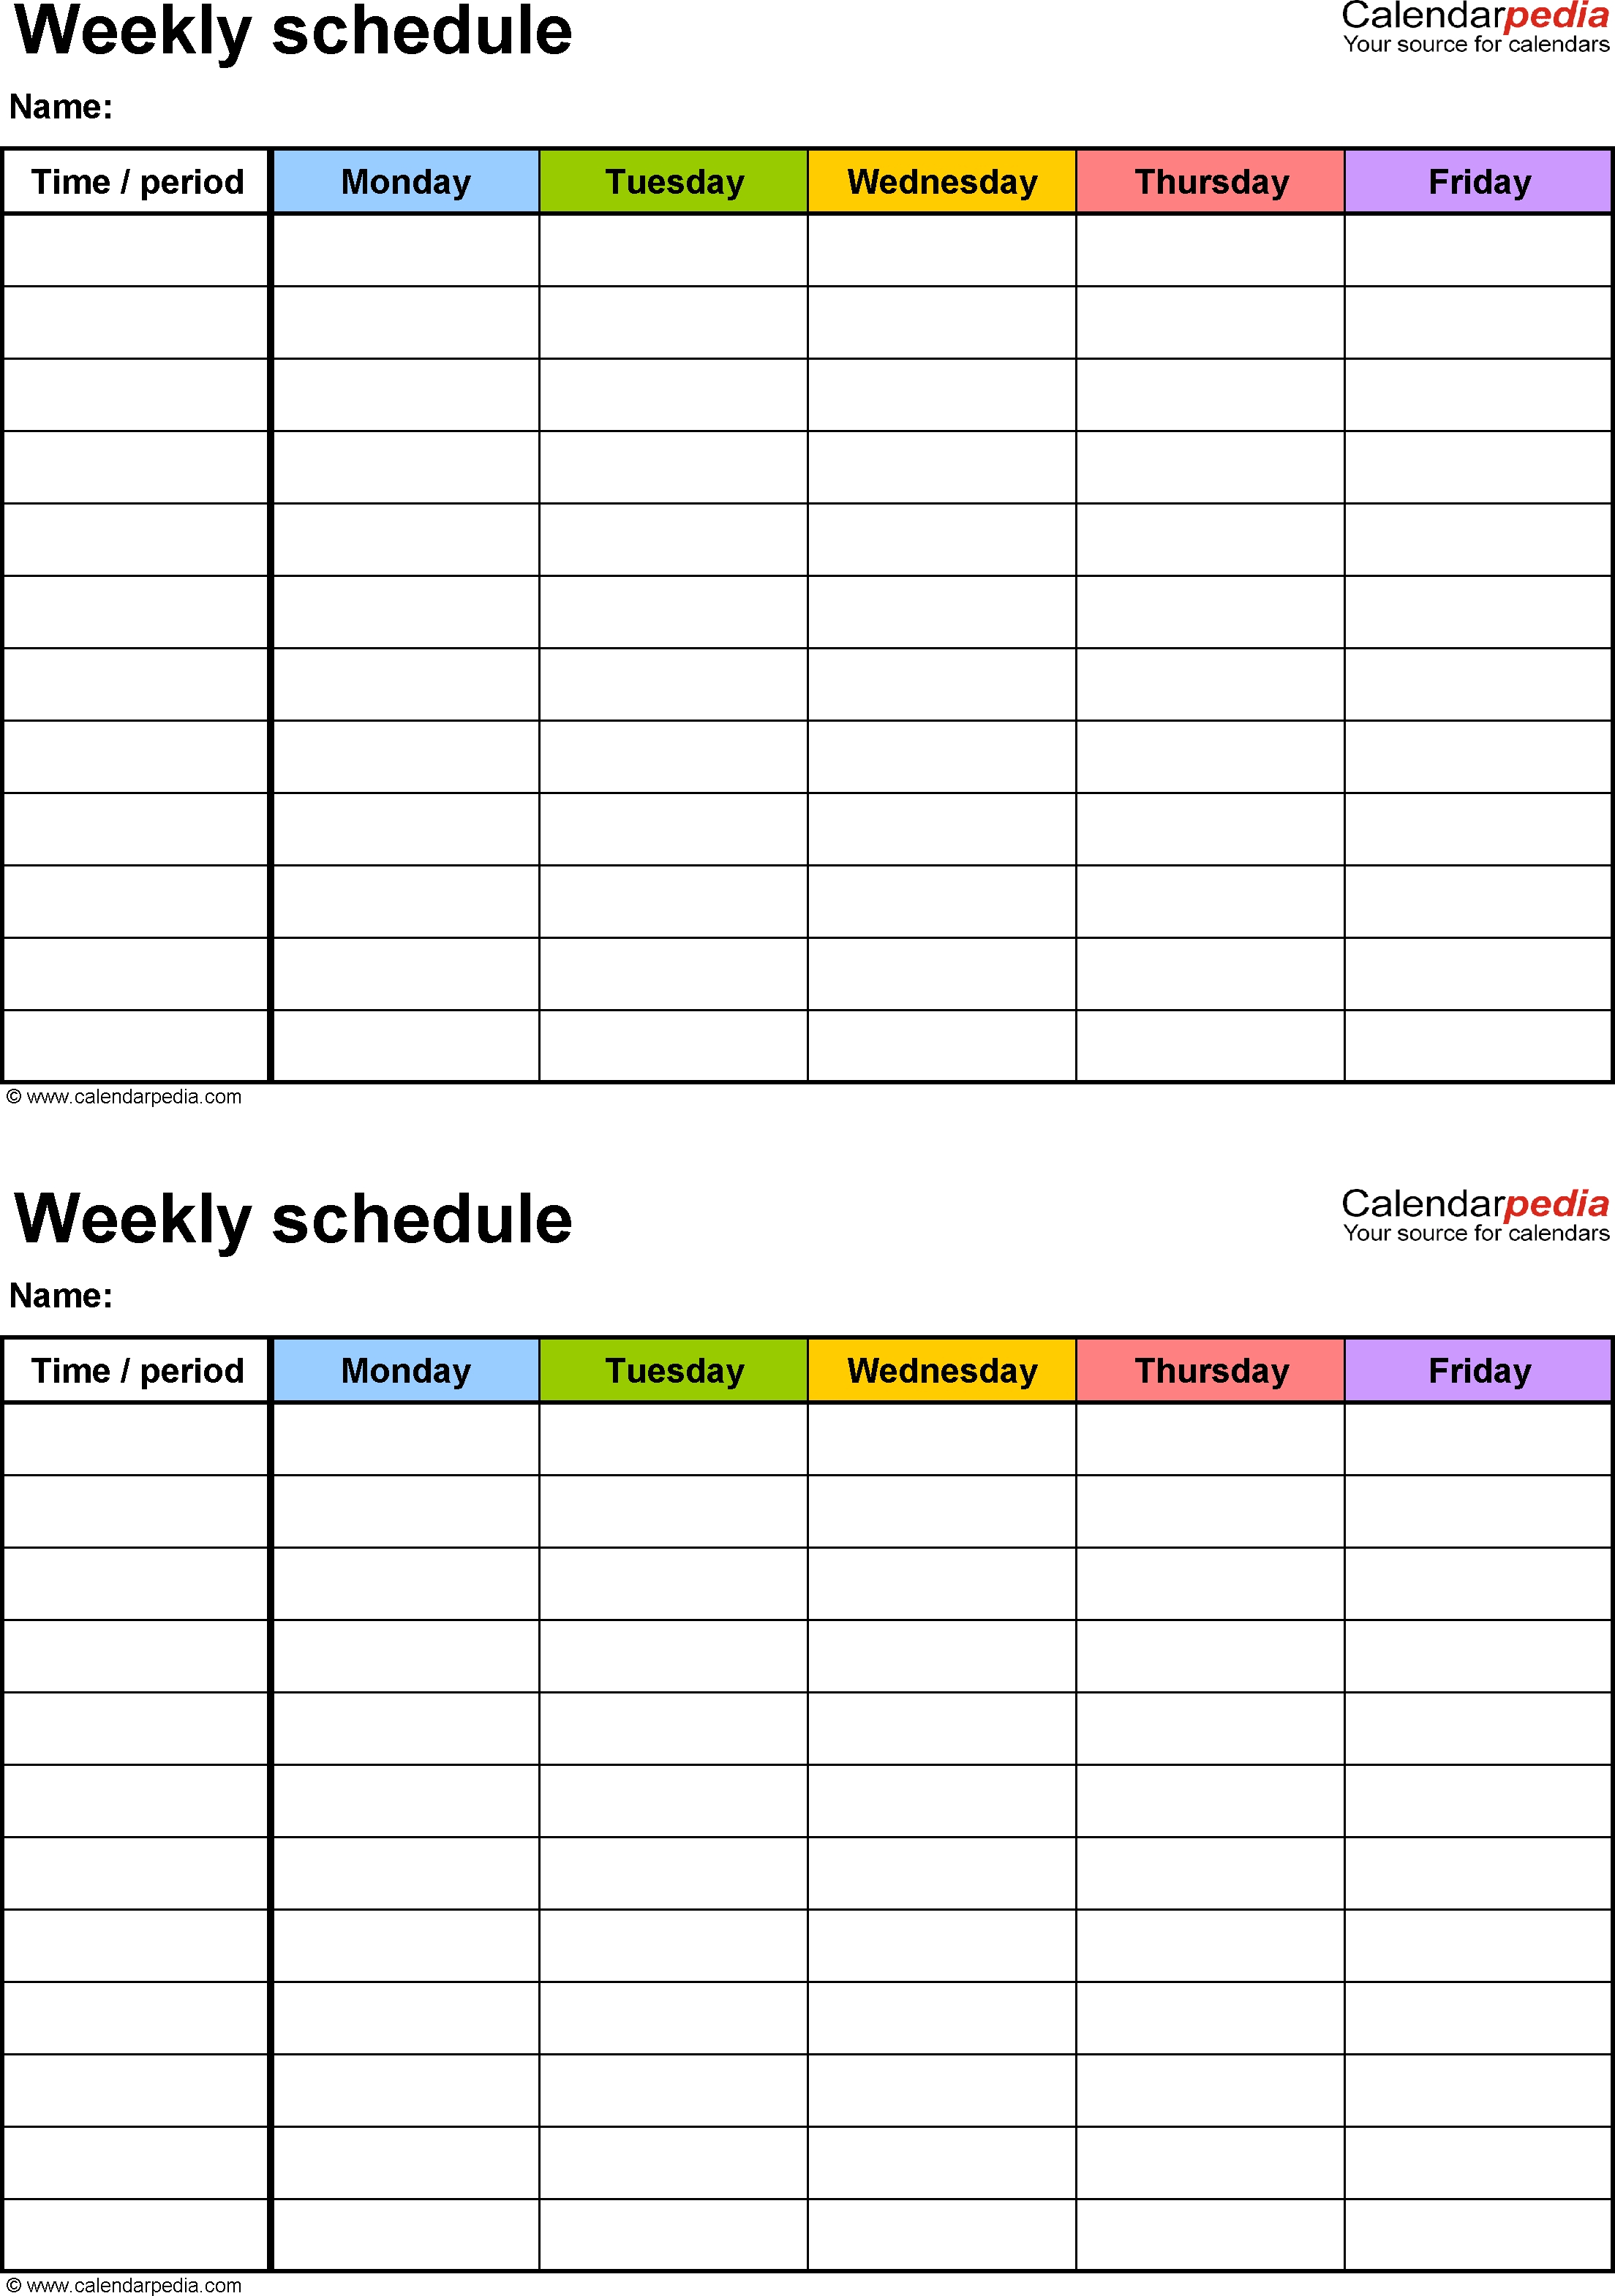 Template Monday To Friday | Calendar Template Printable Monday Through Friday Schedule Template Free